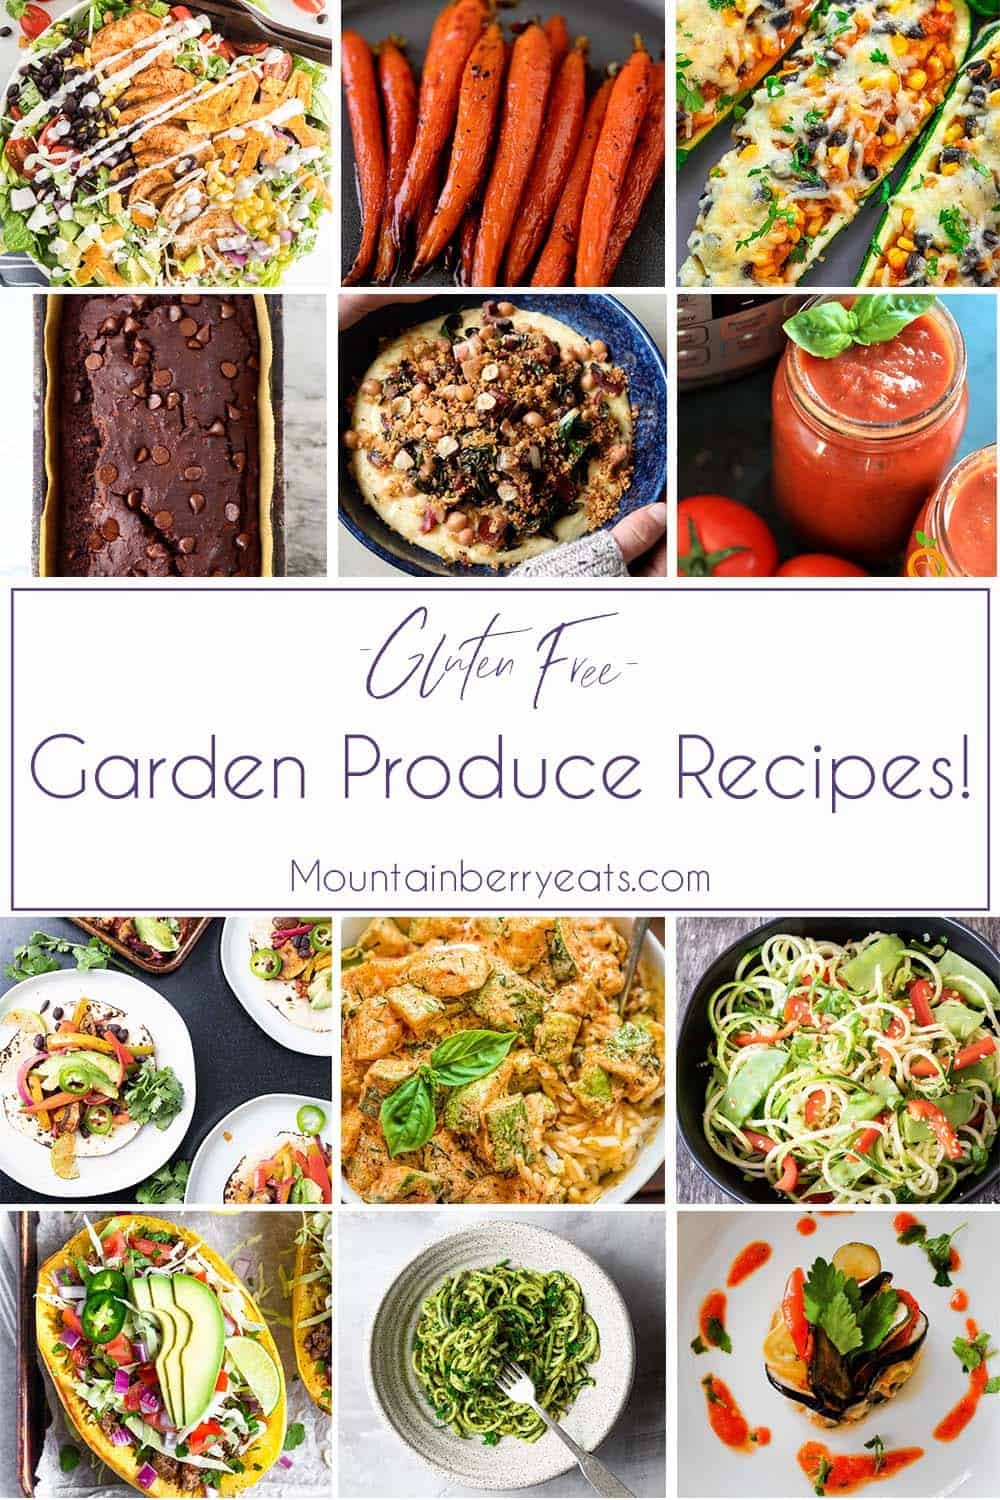 Gluten Free Garden Produce Recipes